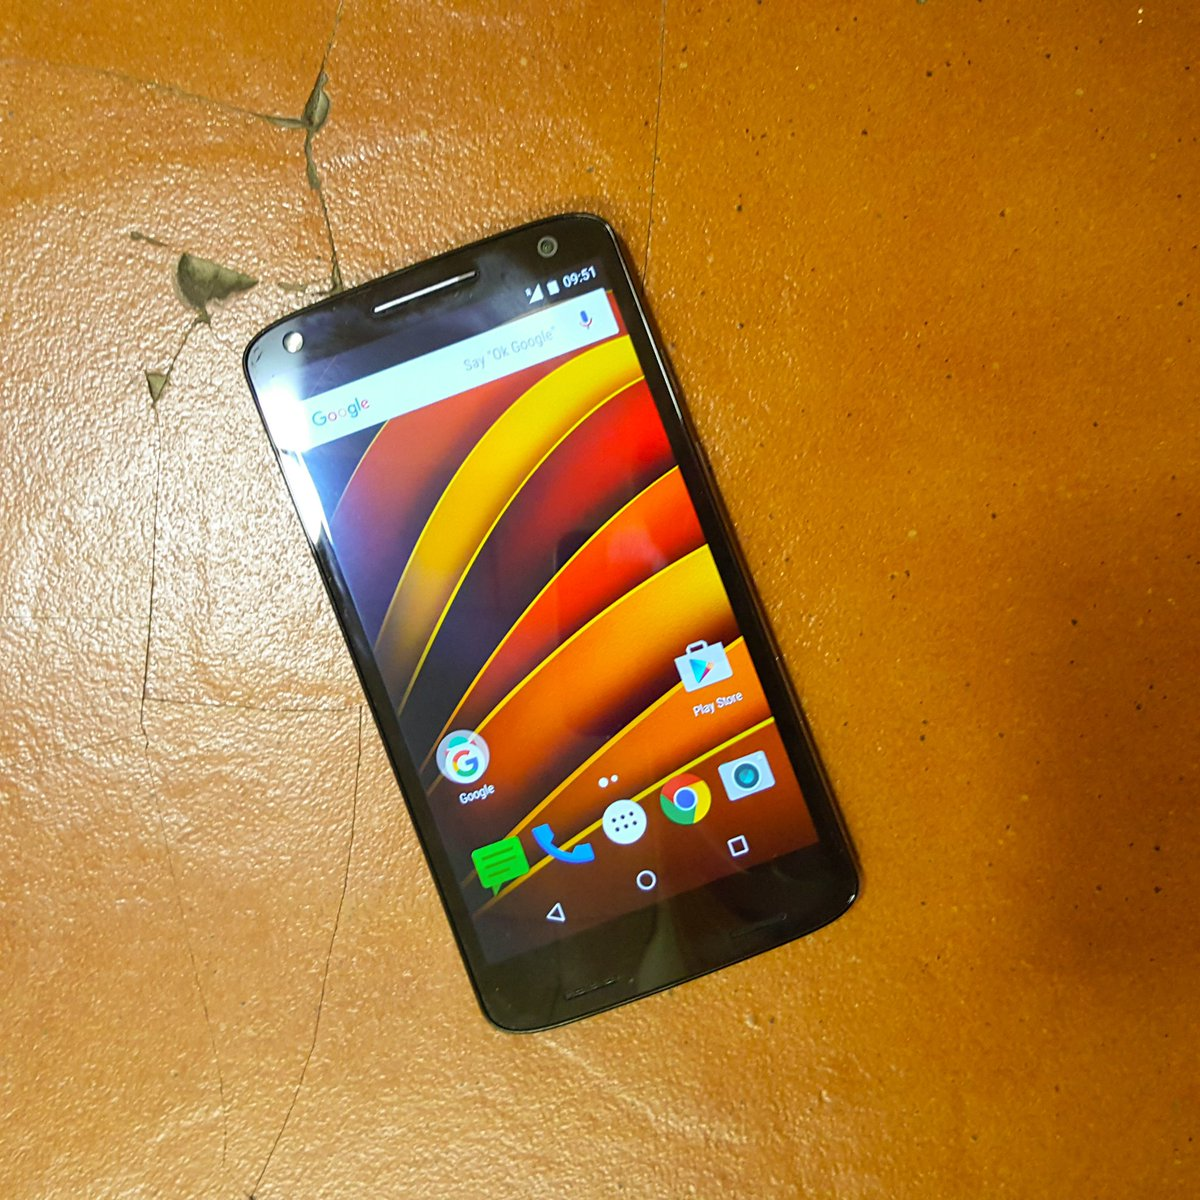 Oops! Just dropped the Moto X Force on the floor and the tile broke. #motorola #motoxforce @Moto_IND https://t.co/WJlYZnrUzr